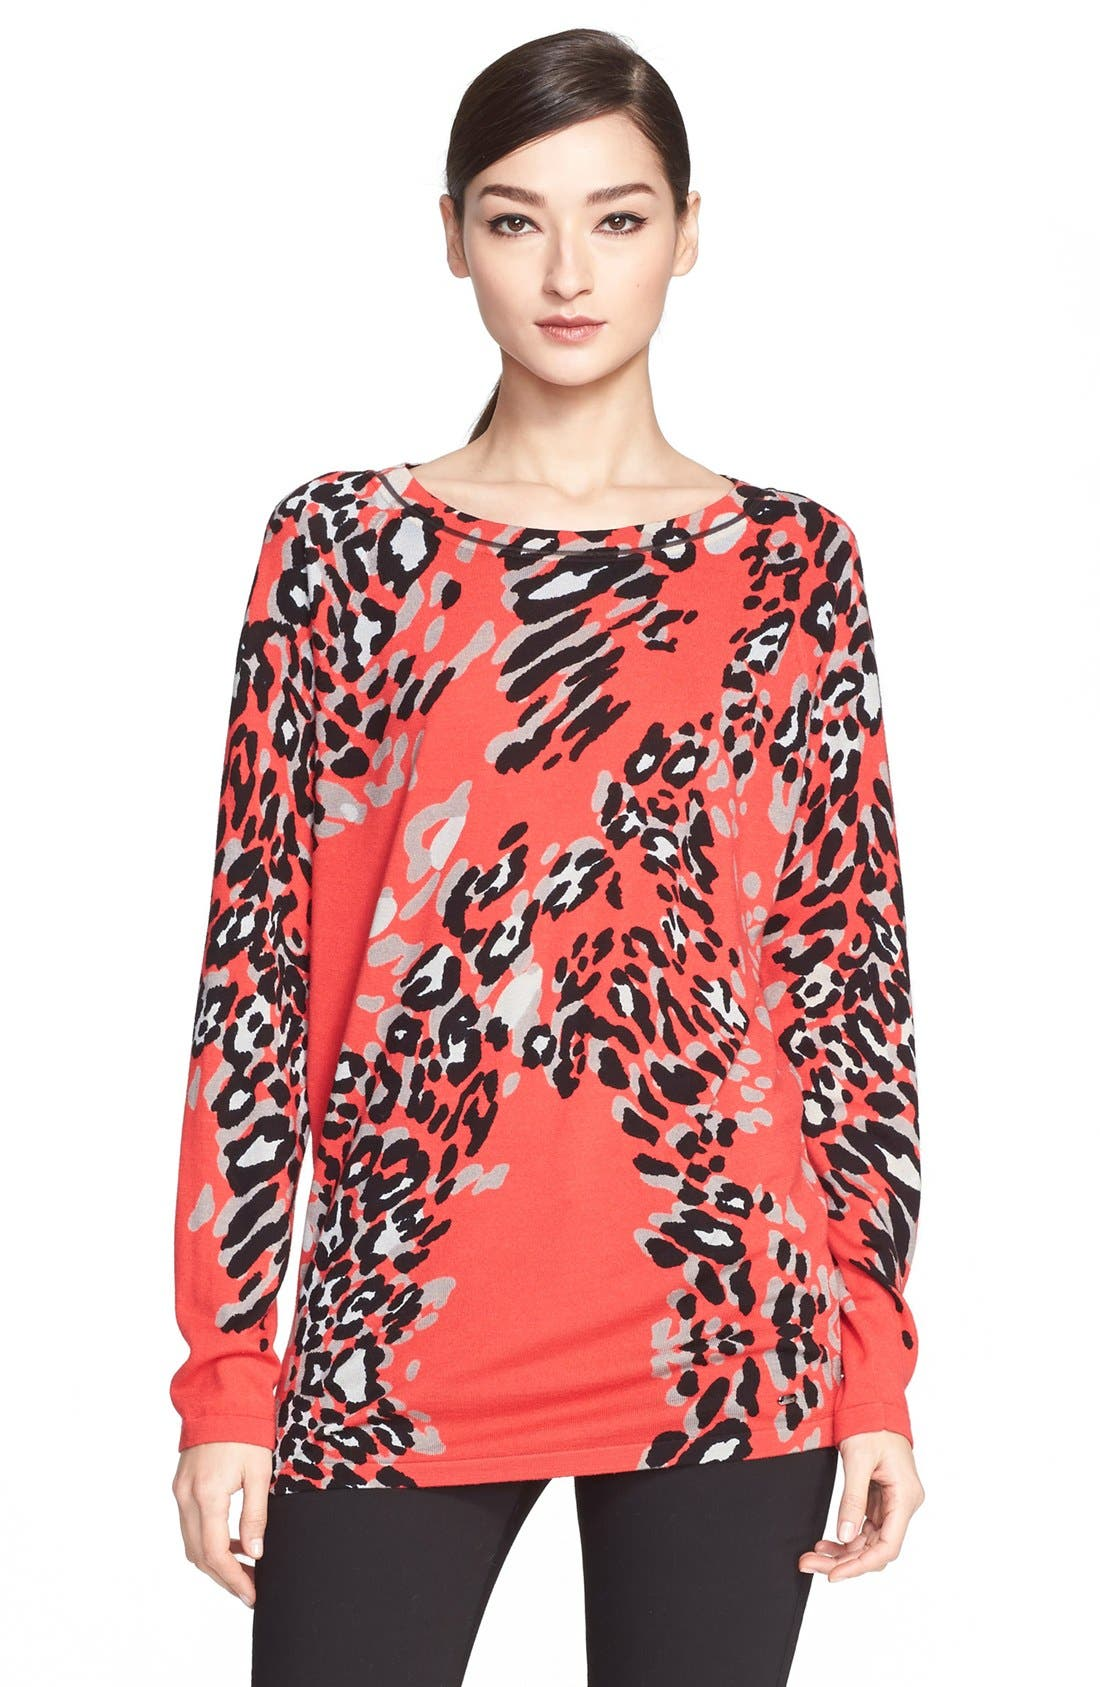 Alternate Image 1 Selected - ESCADA Leopard Print Wool Blend Tunic